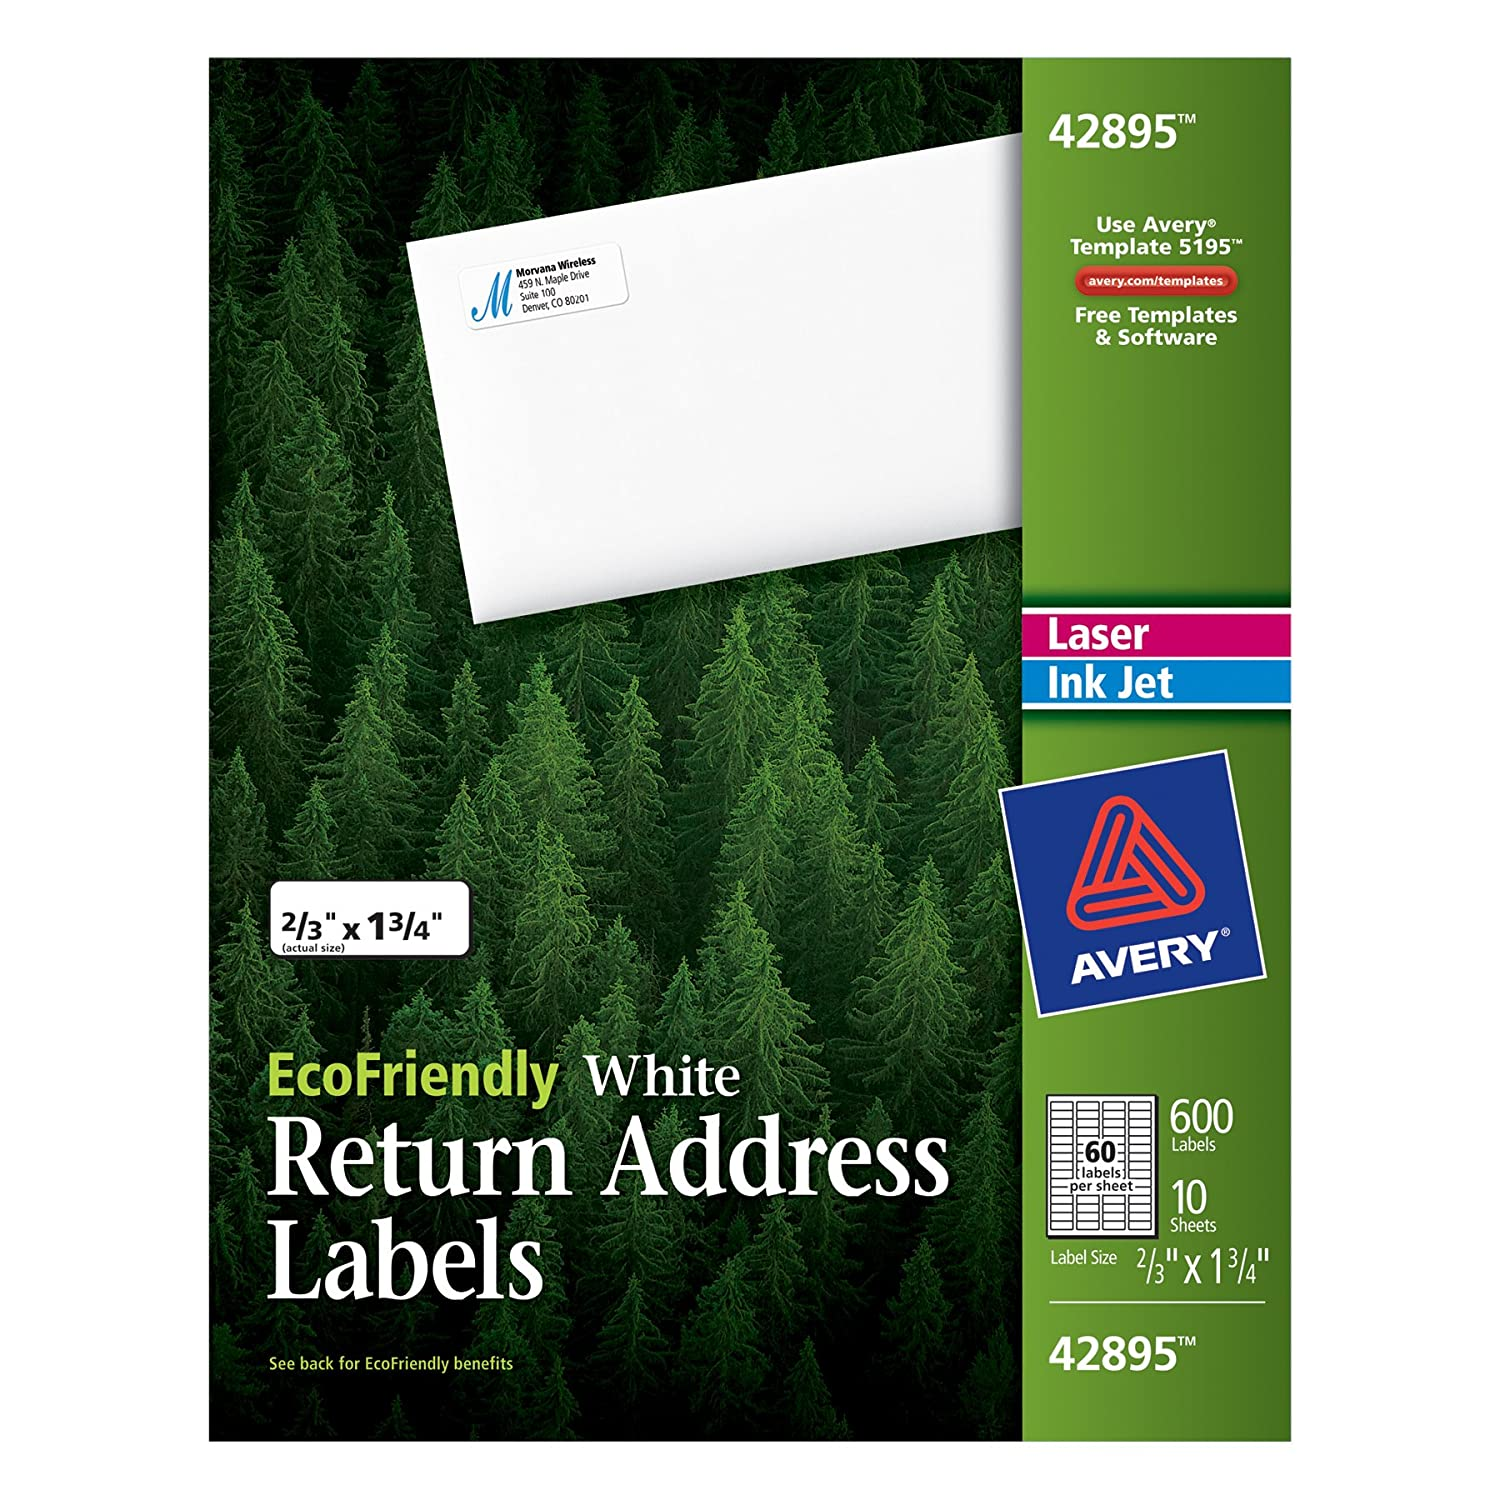 8195 template - Amazon Com Avery Return Address Labels White 0 66 X 1 75 Inches Pack Of 600 42895 All Purpose Labels Office Products